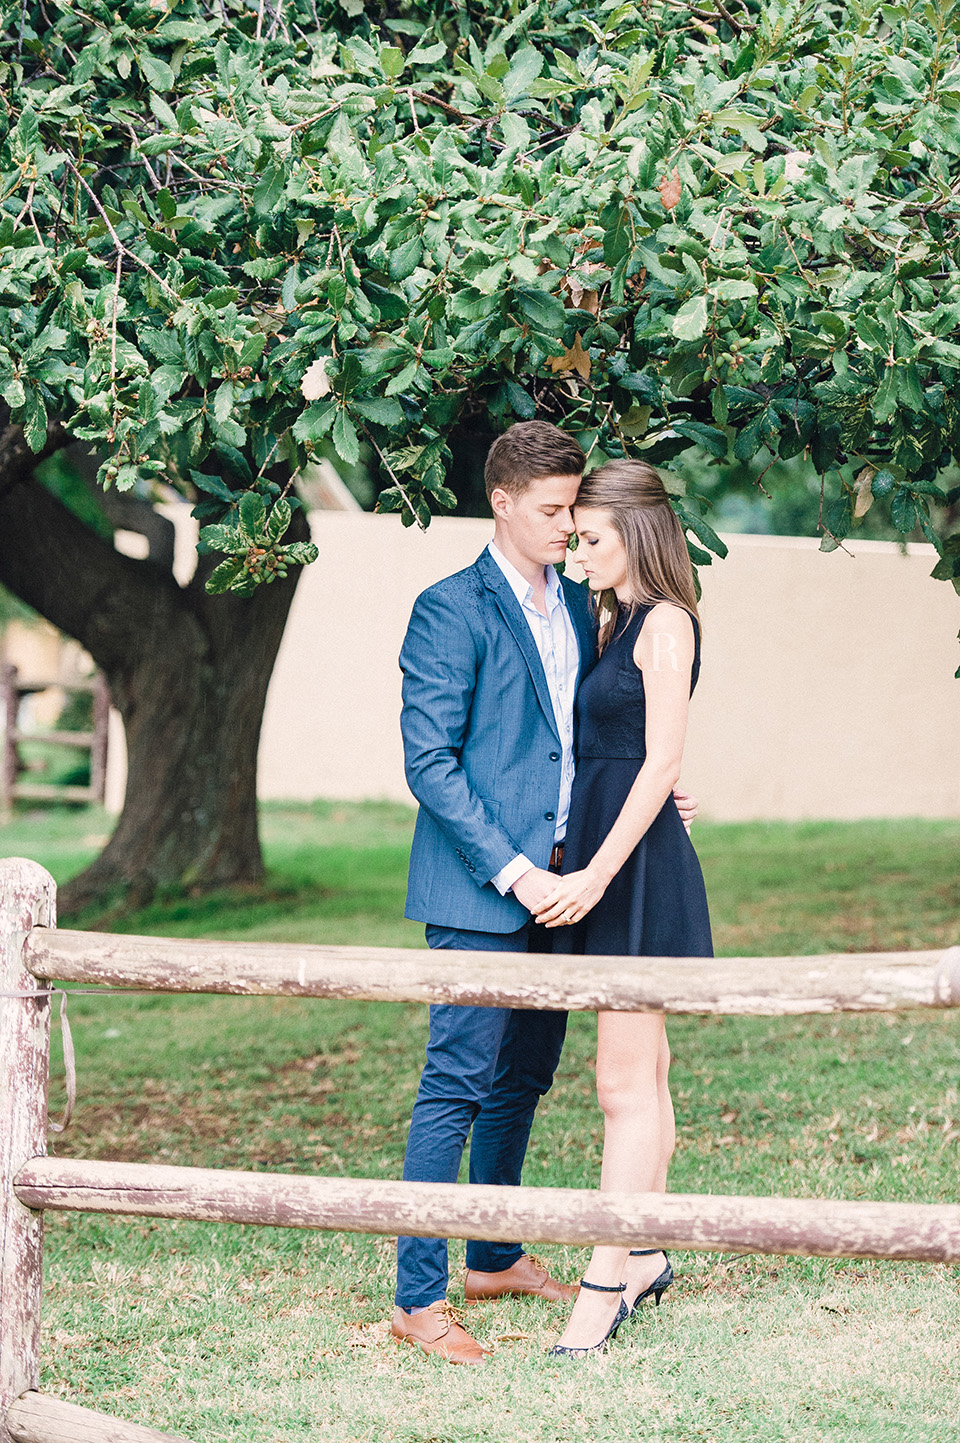 RYAN PARKER_WEDDING PHOTOGRAPHER_COUPLE SESSION_SOUTH AFRICA_JOHANNESBURG_D&M-0585.jpg